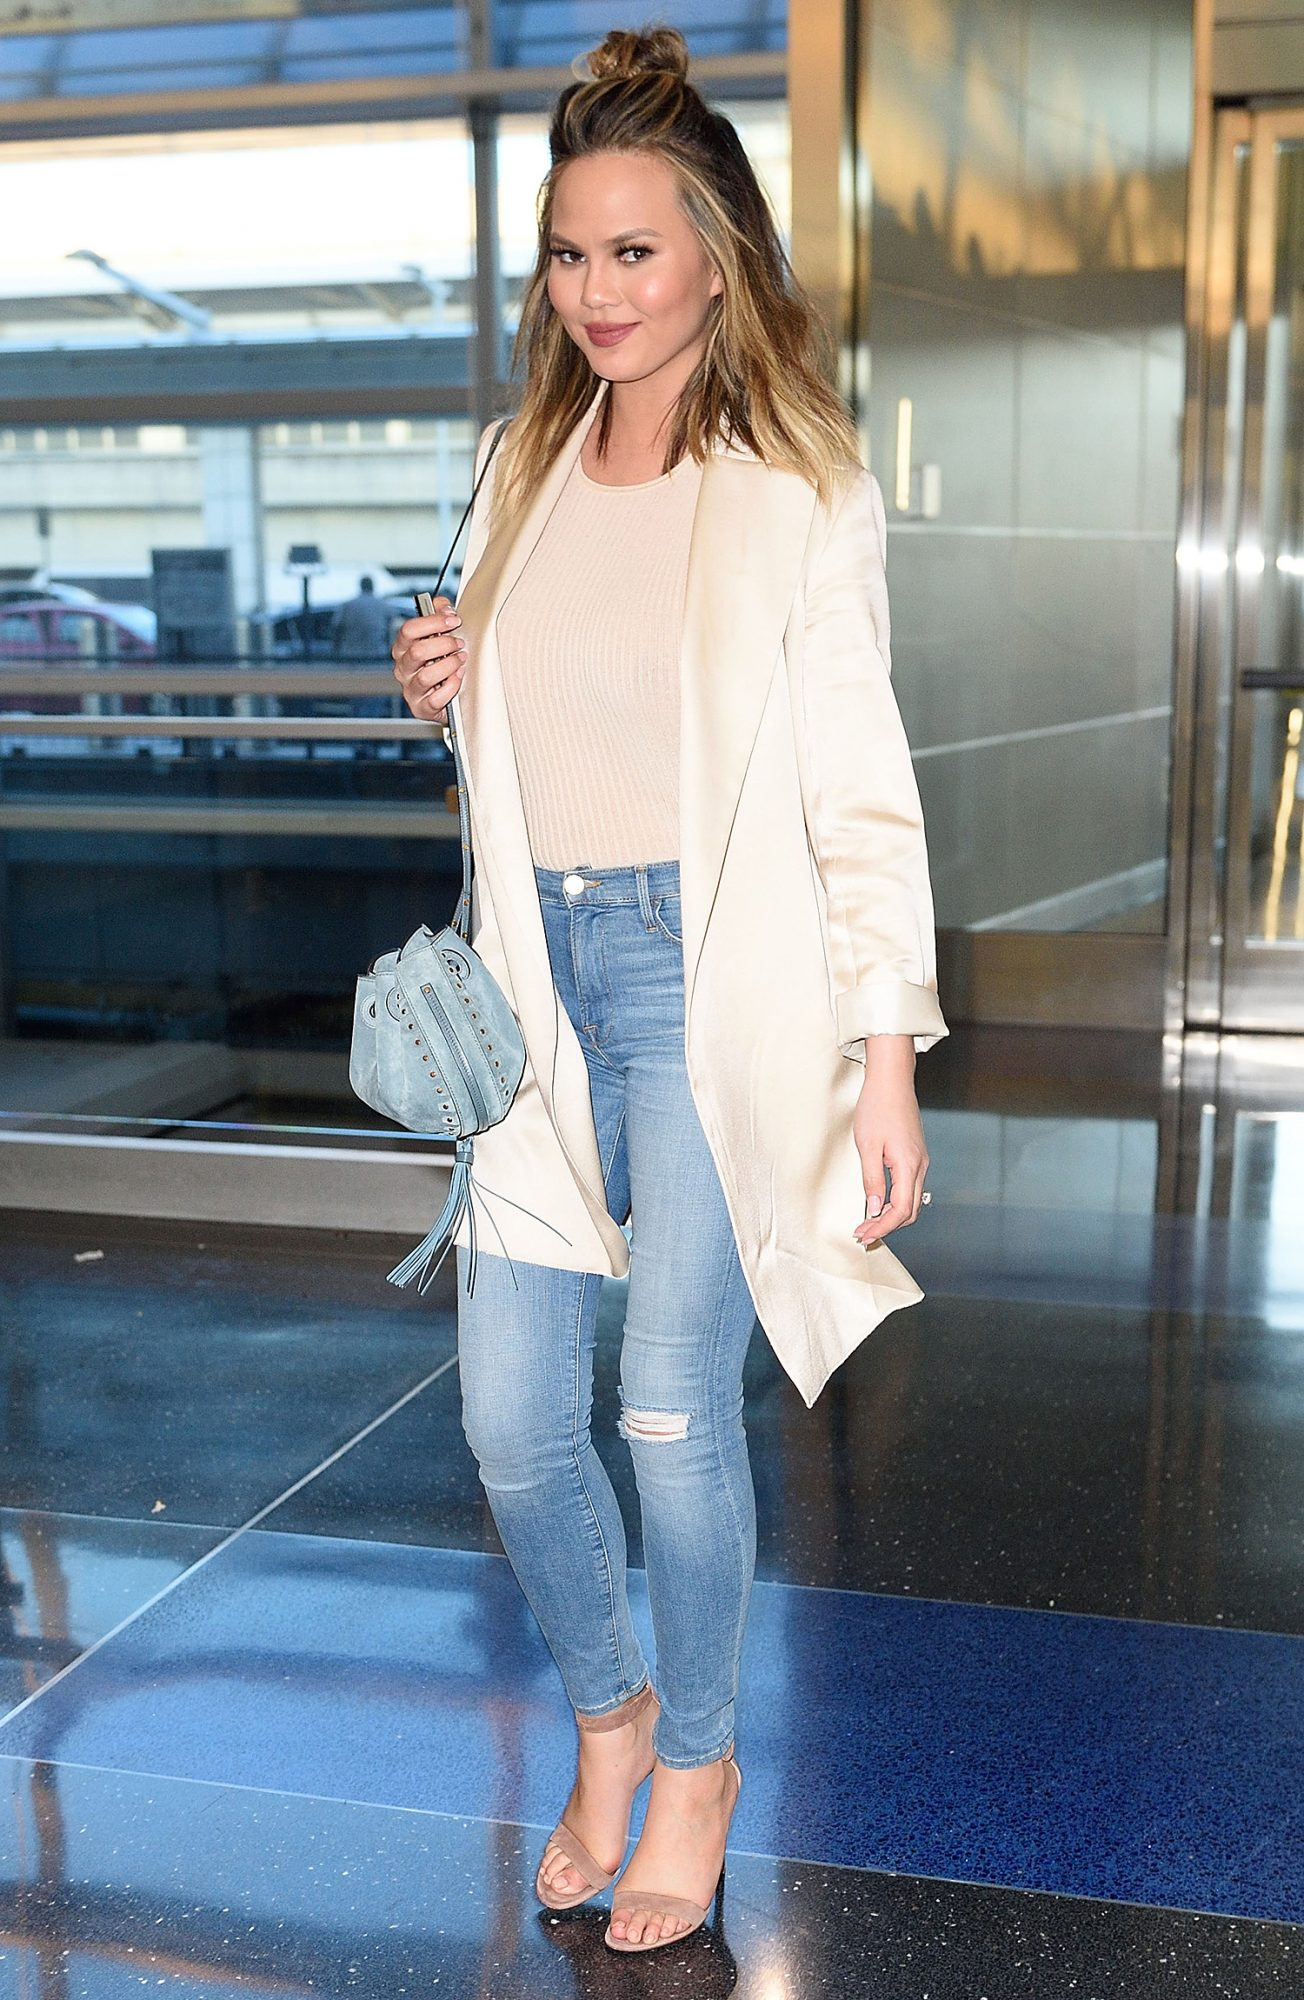 Chrissy Teigen gives a Smile at JFK Airport